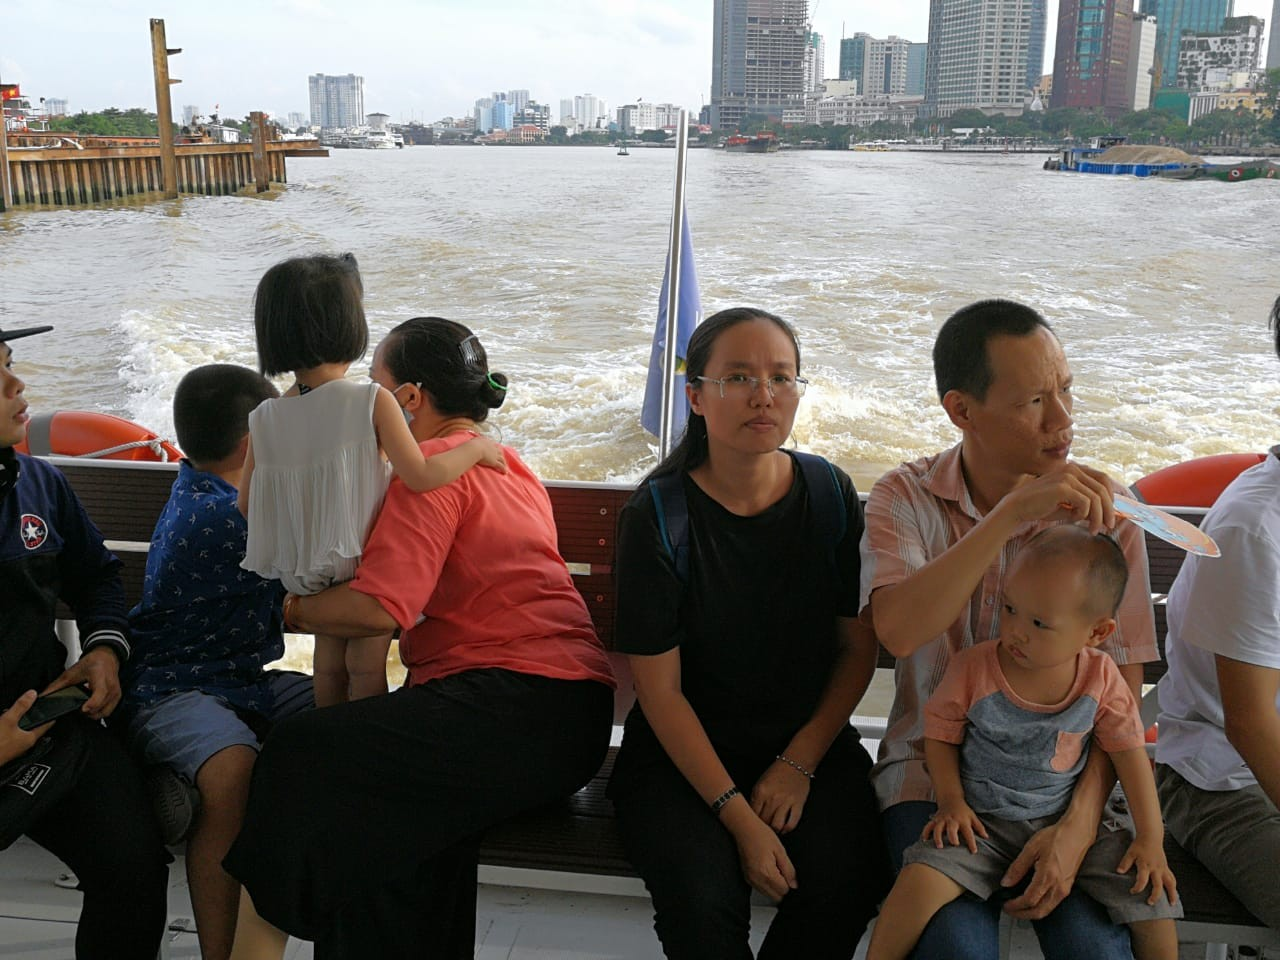 Tourists enjoy scenery from the rear deck of the Saigon water bus.